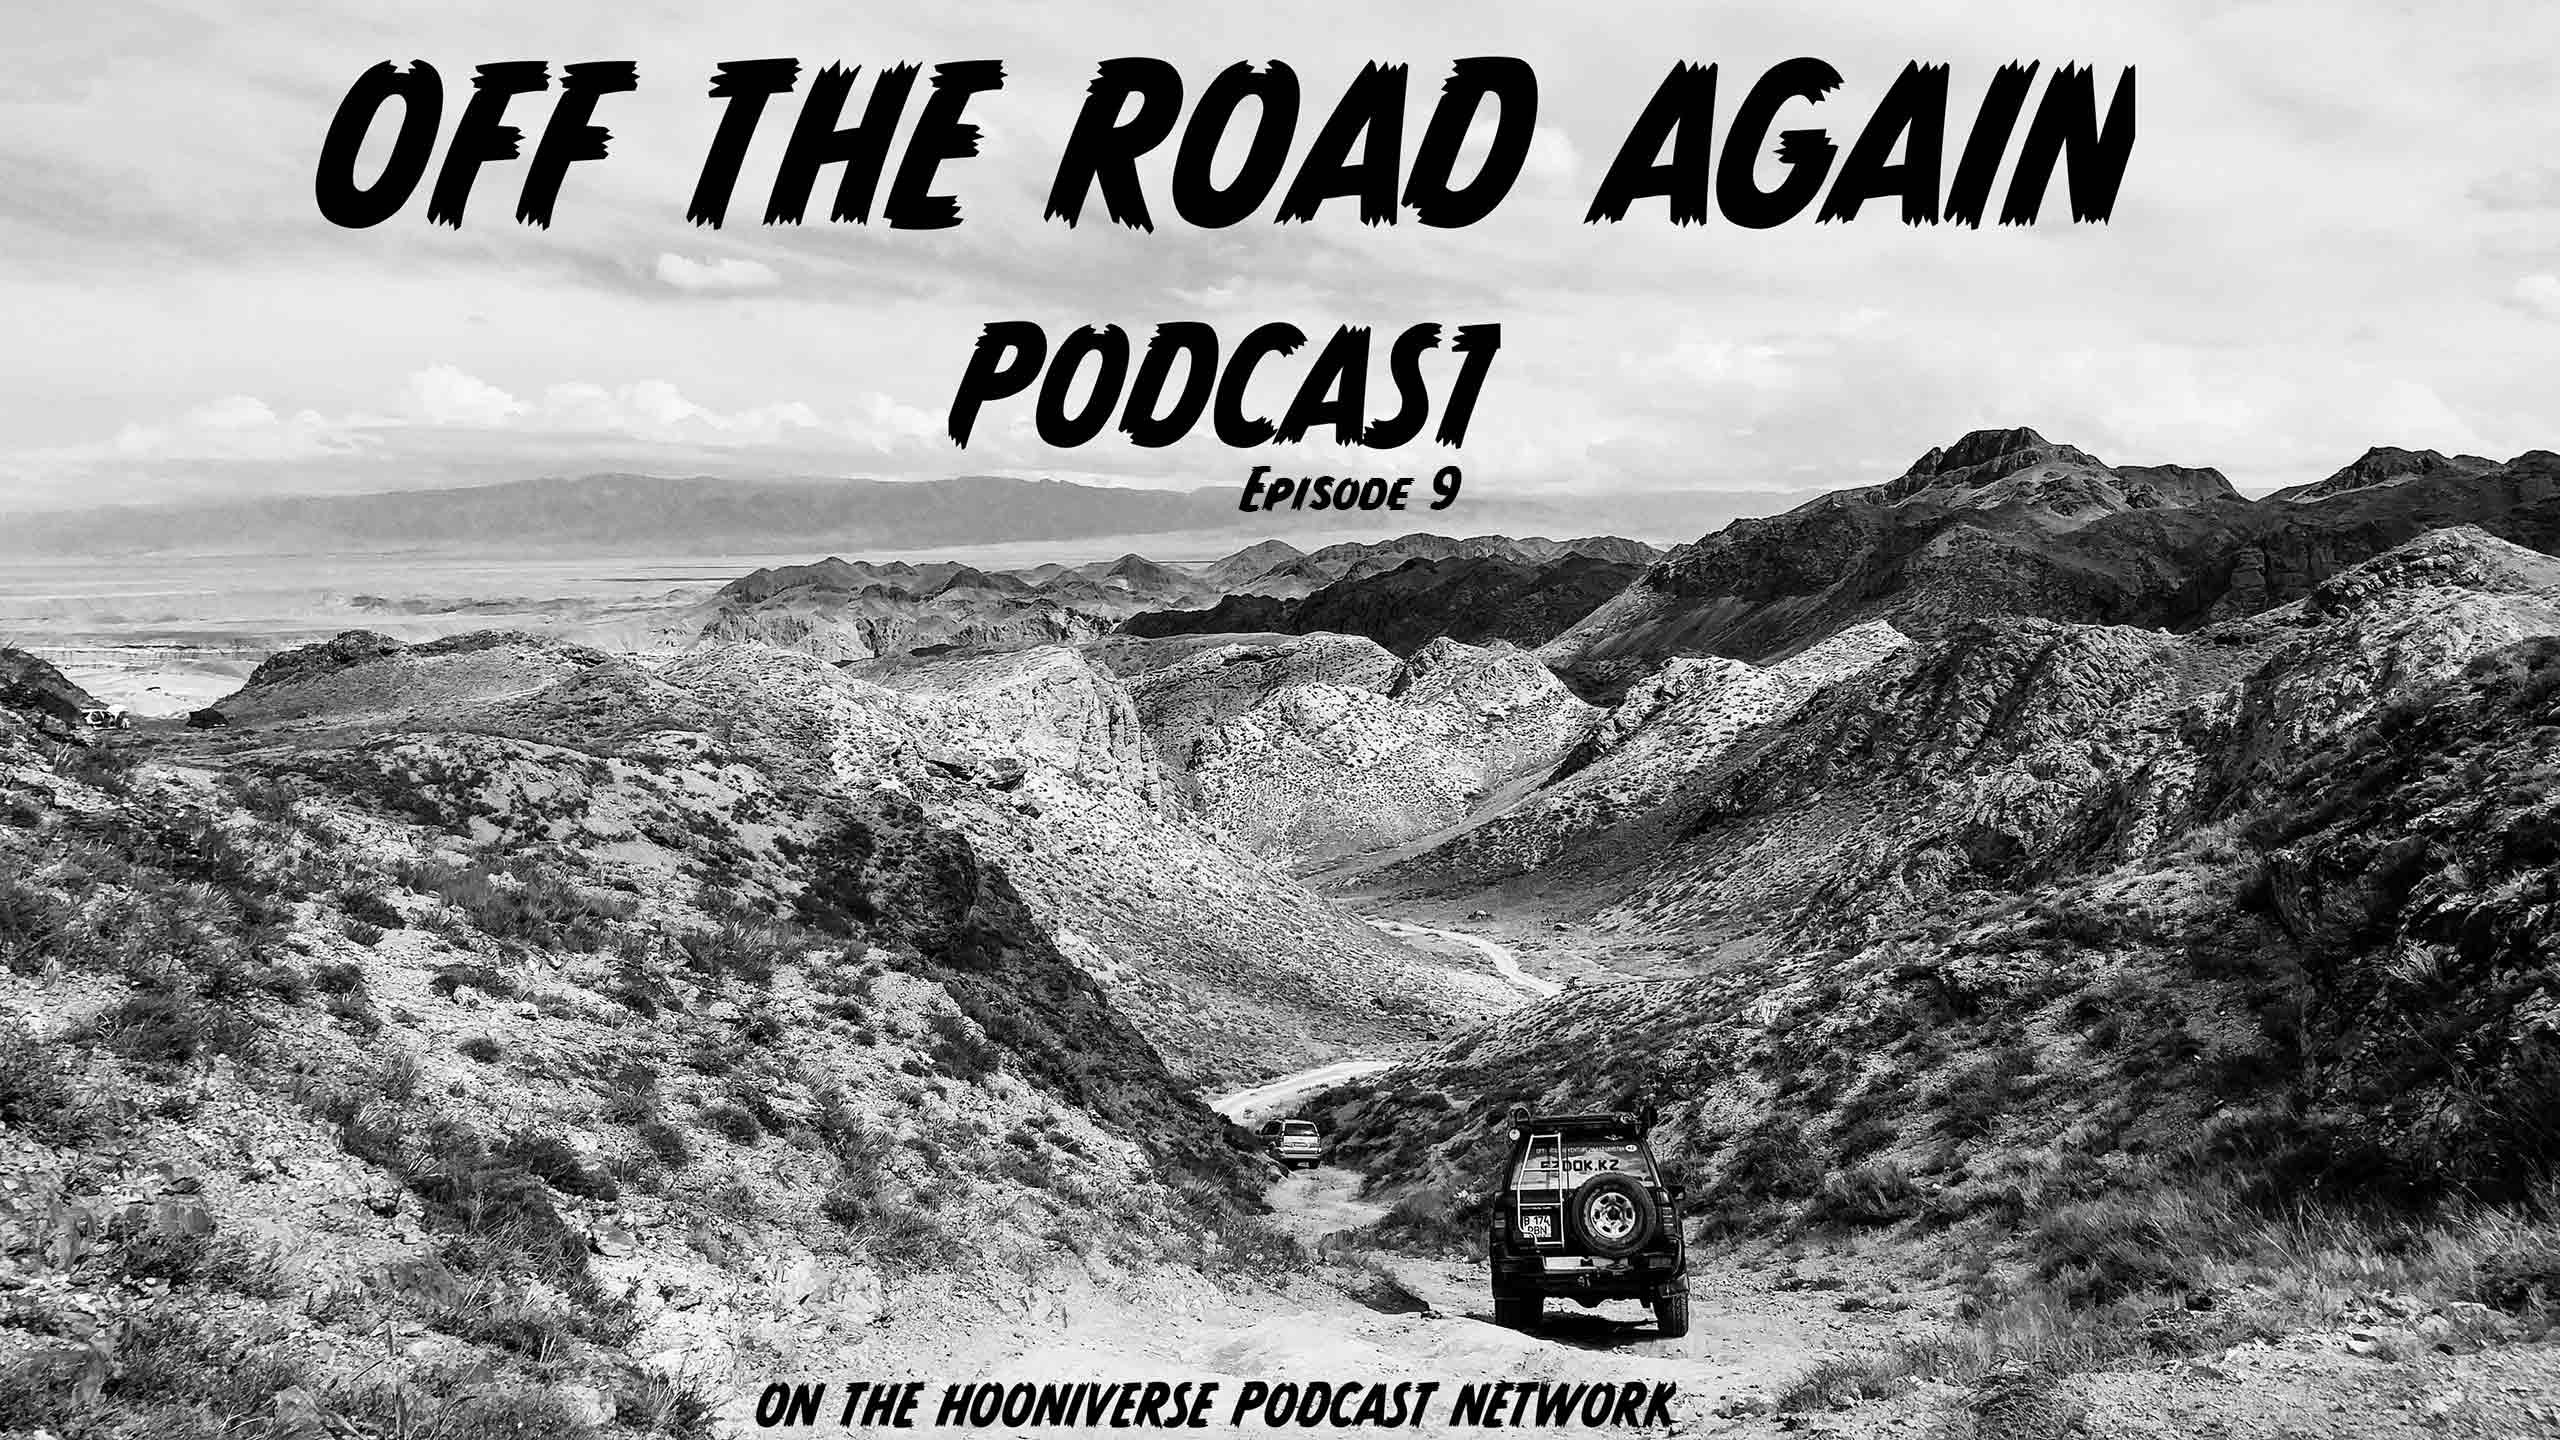 Off The Road Again Podcast - Episode 9